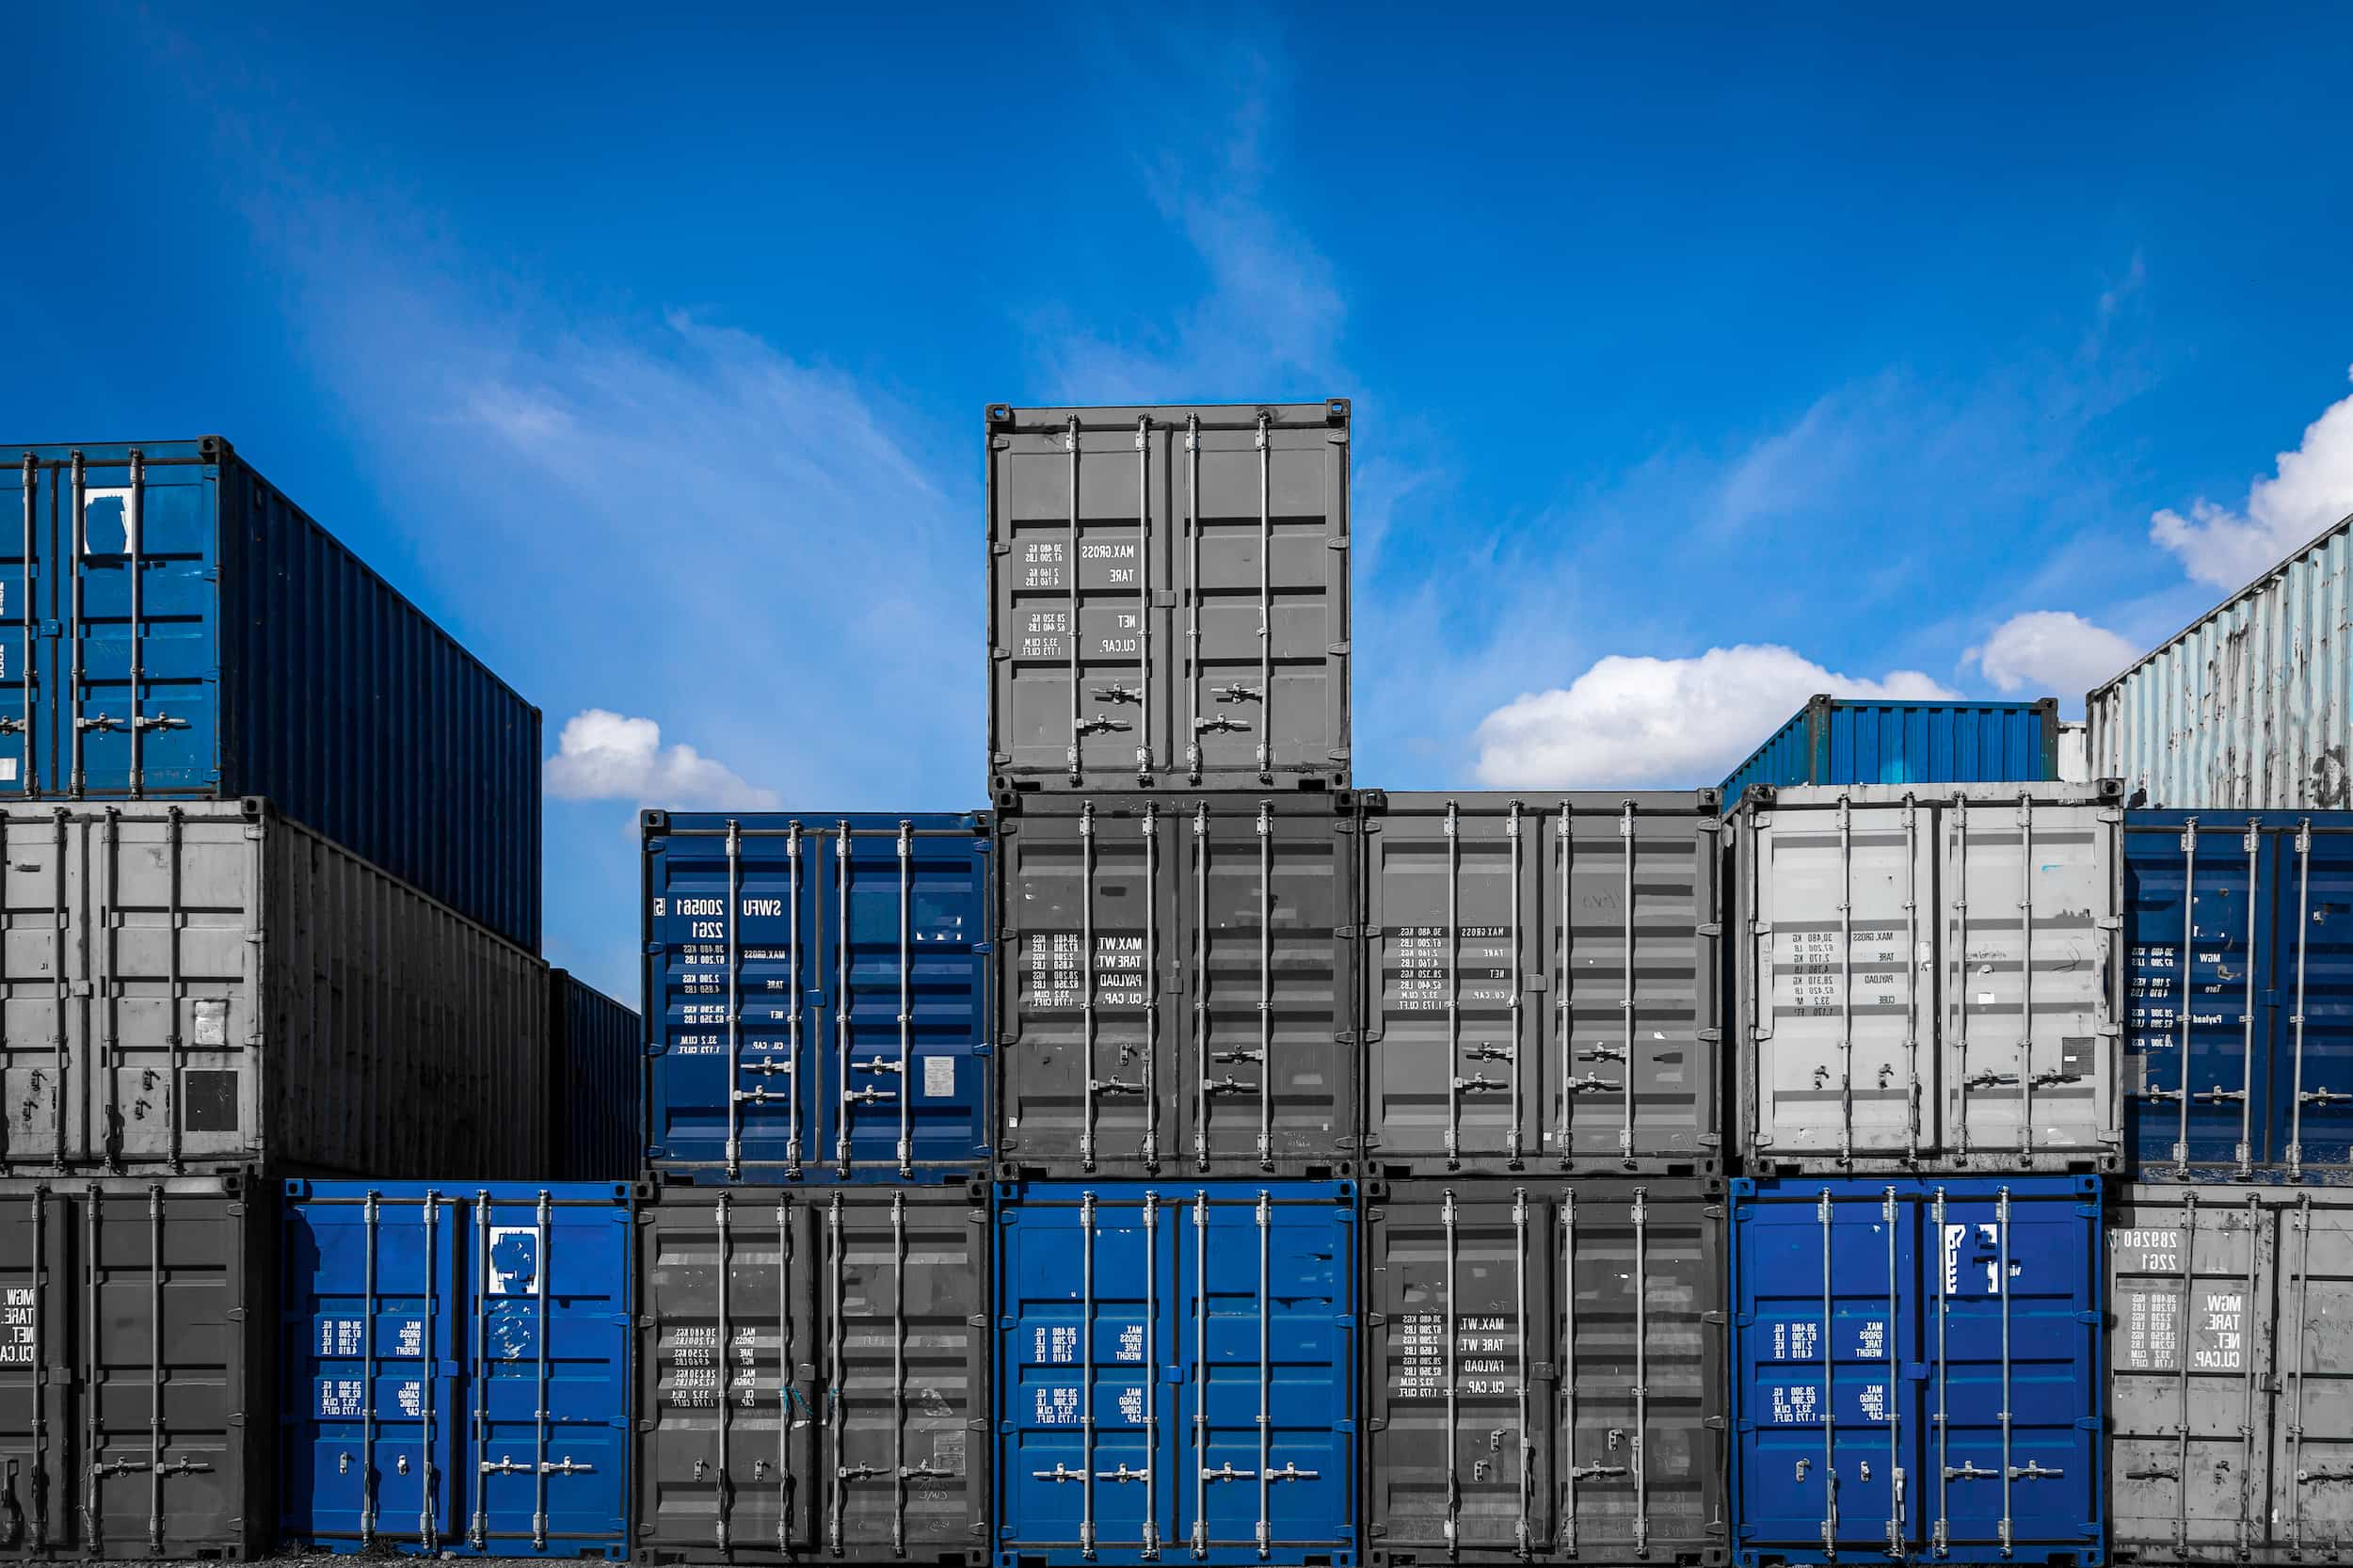 Shipping containers stacked on top of eachother